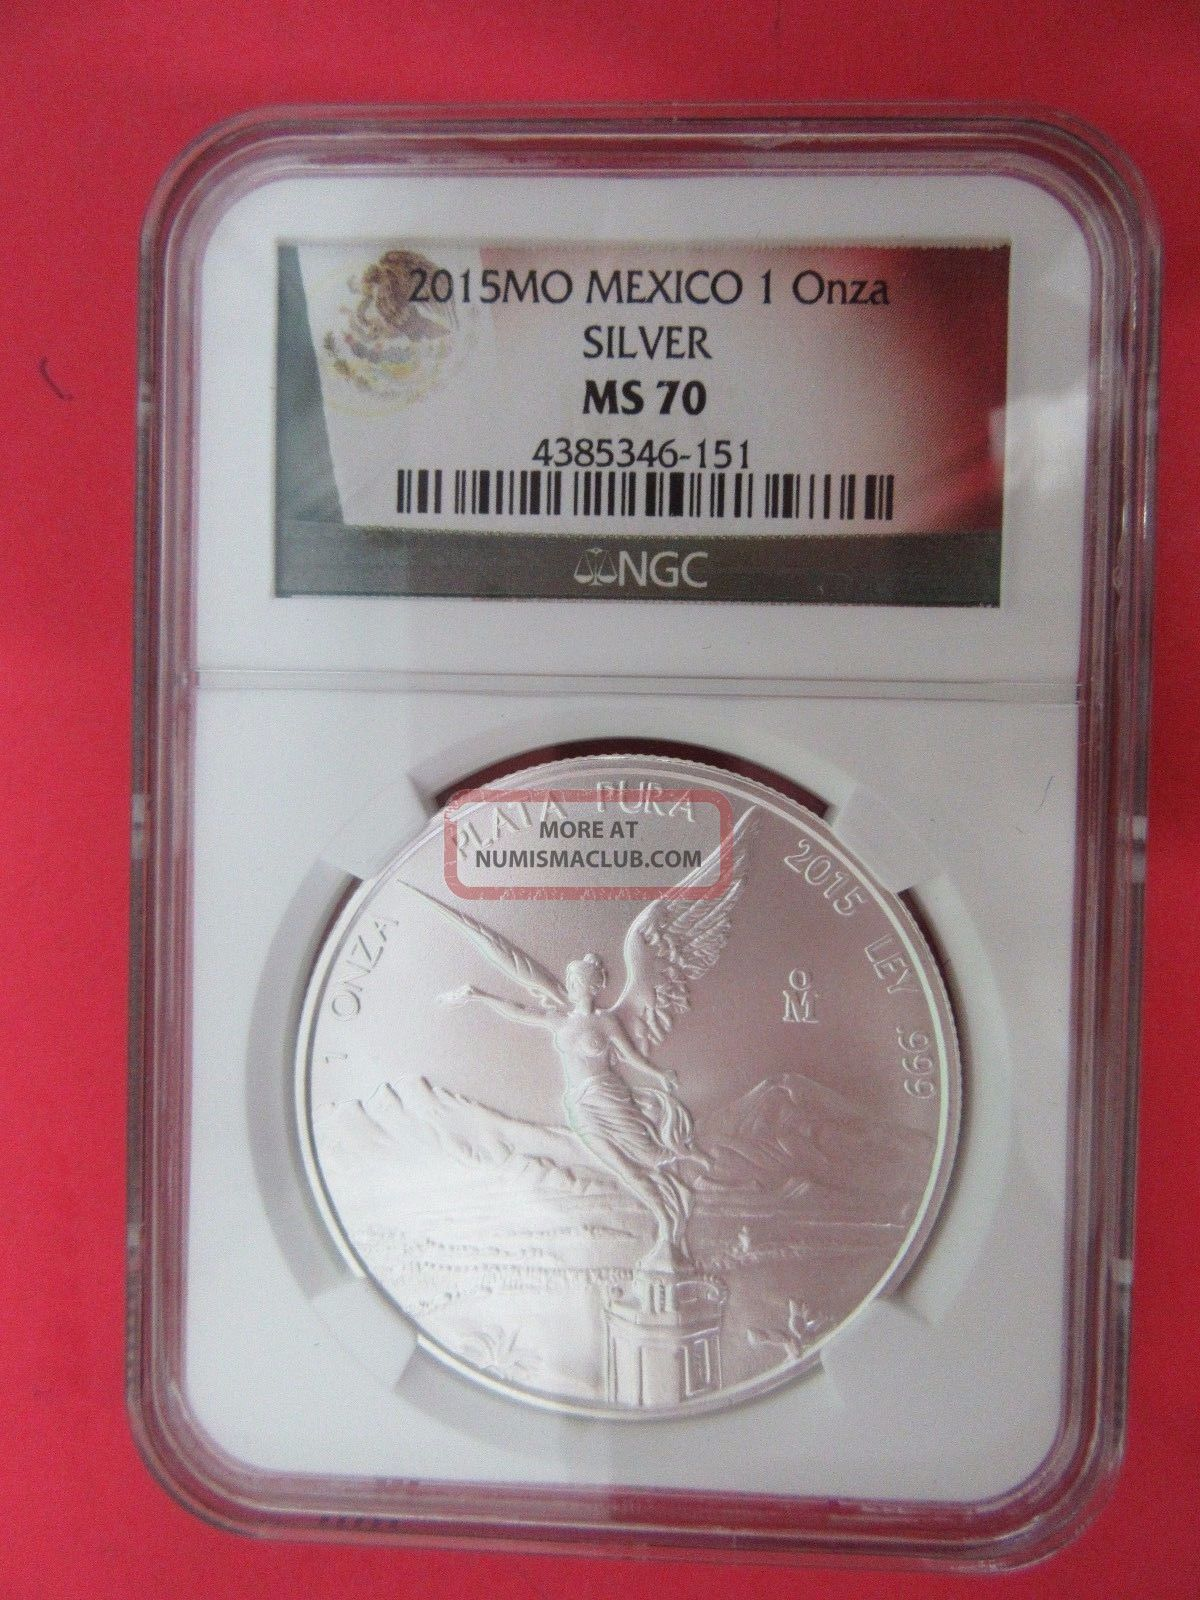 2015 Mexico 1 Onza Silver Ngc Ms 70 Mexico photo